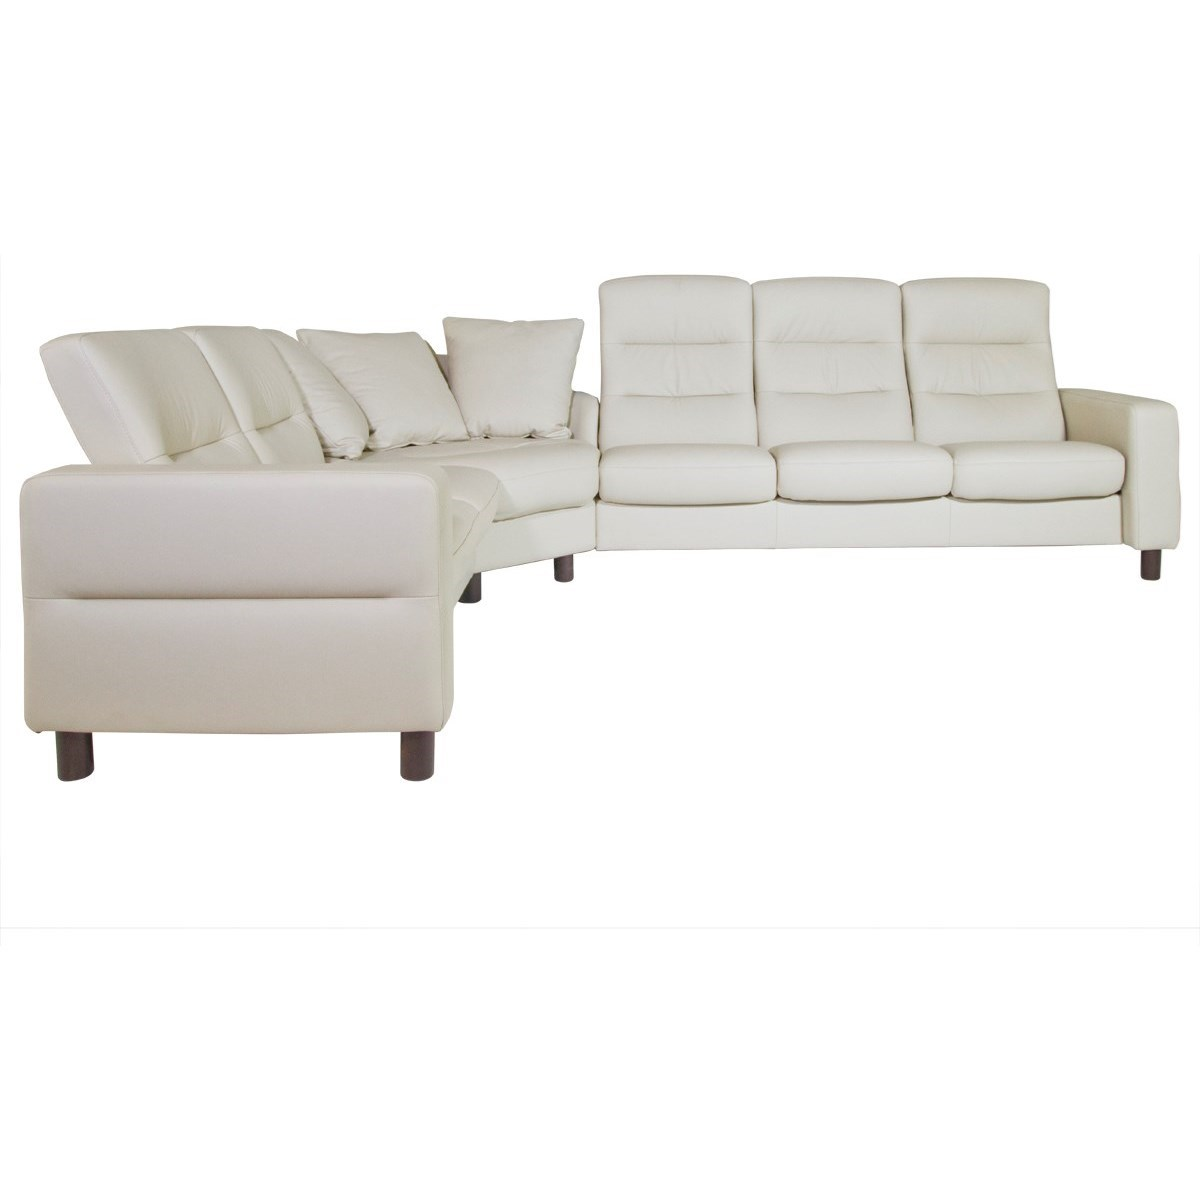 Stressless Wave Sofa Reviews Stressless Wave Reclining Sectional Homeworld Furniture